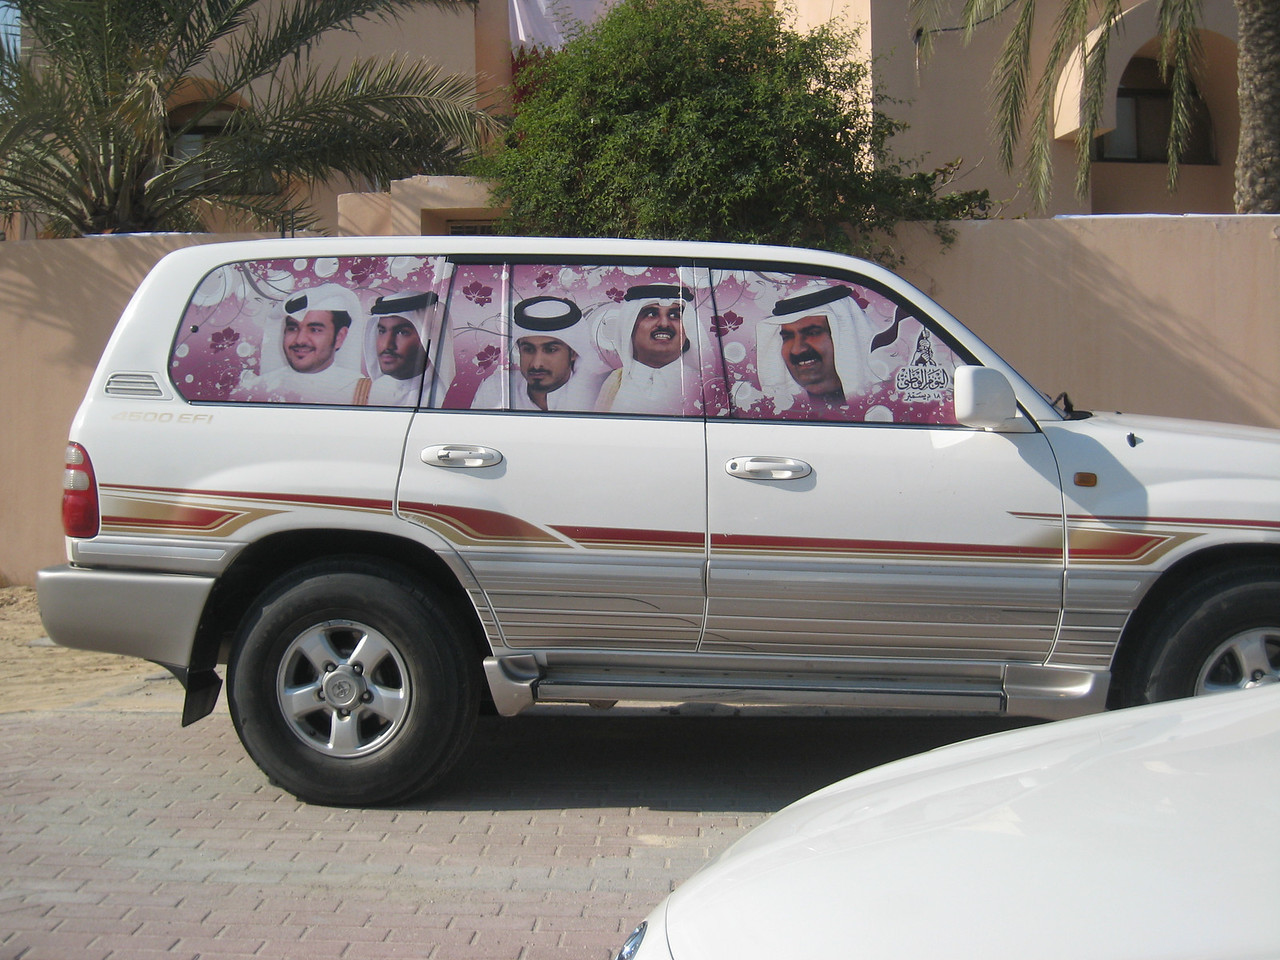 The side of the same car showing the Qatari ruling Al Thani family.  The Emir, H.H. Hamad bin Khalifa al Thani is pictured on the far right. Pictured next is the Heir Apparent, H.H. Tamim bin Hamad al Thani et ors.